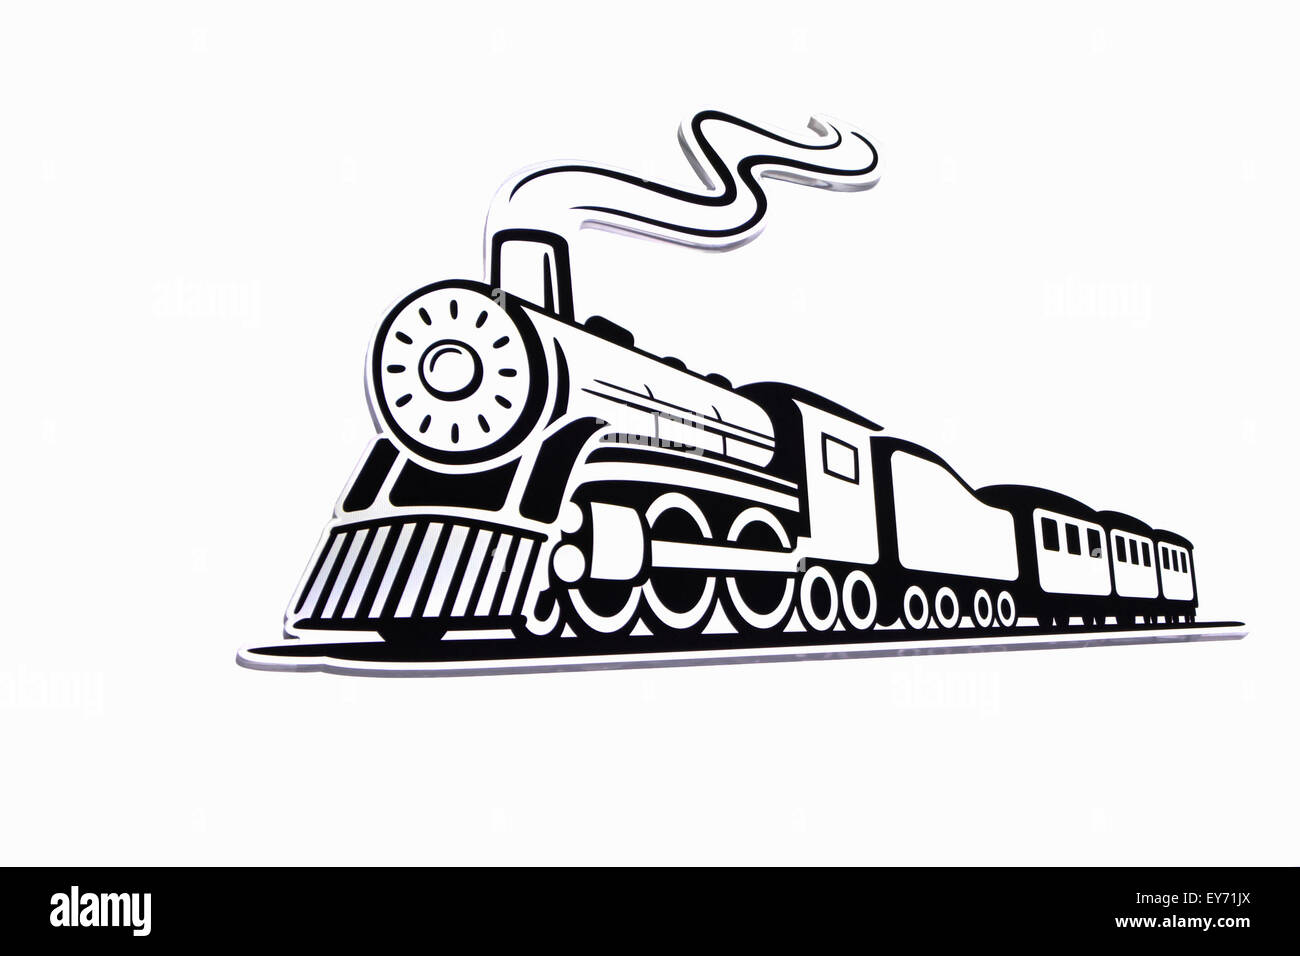 Vector illustration of a vintage American steam locomotive. Black and white photography - Stock Image